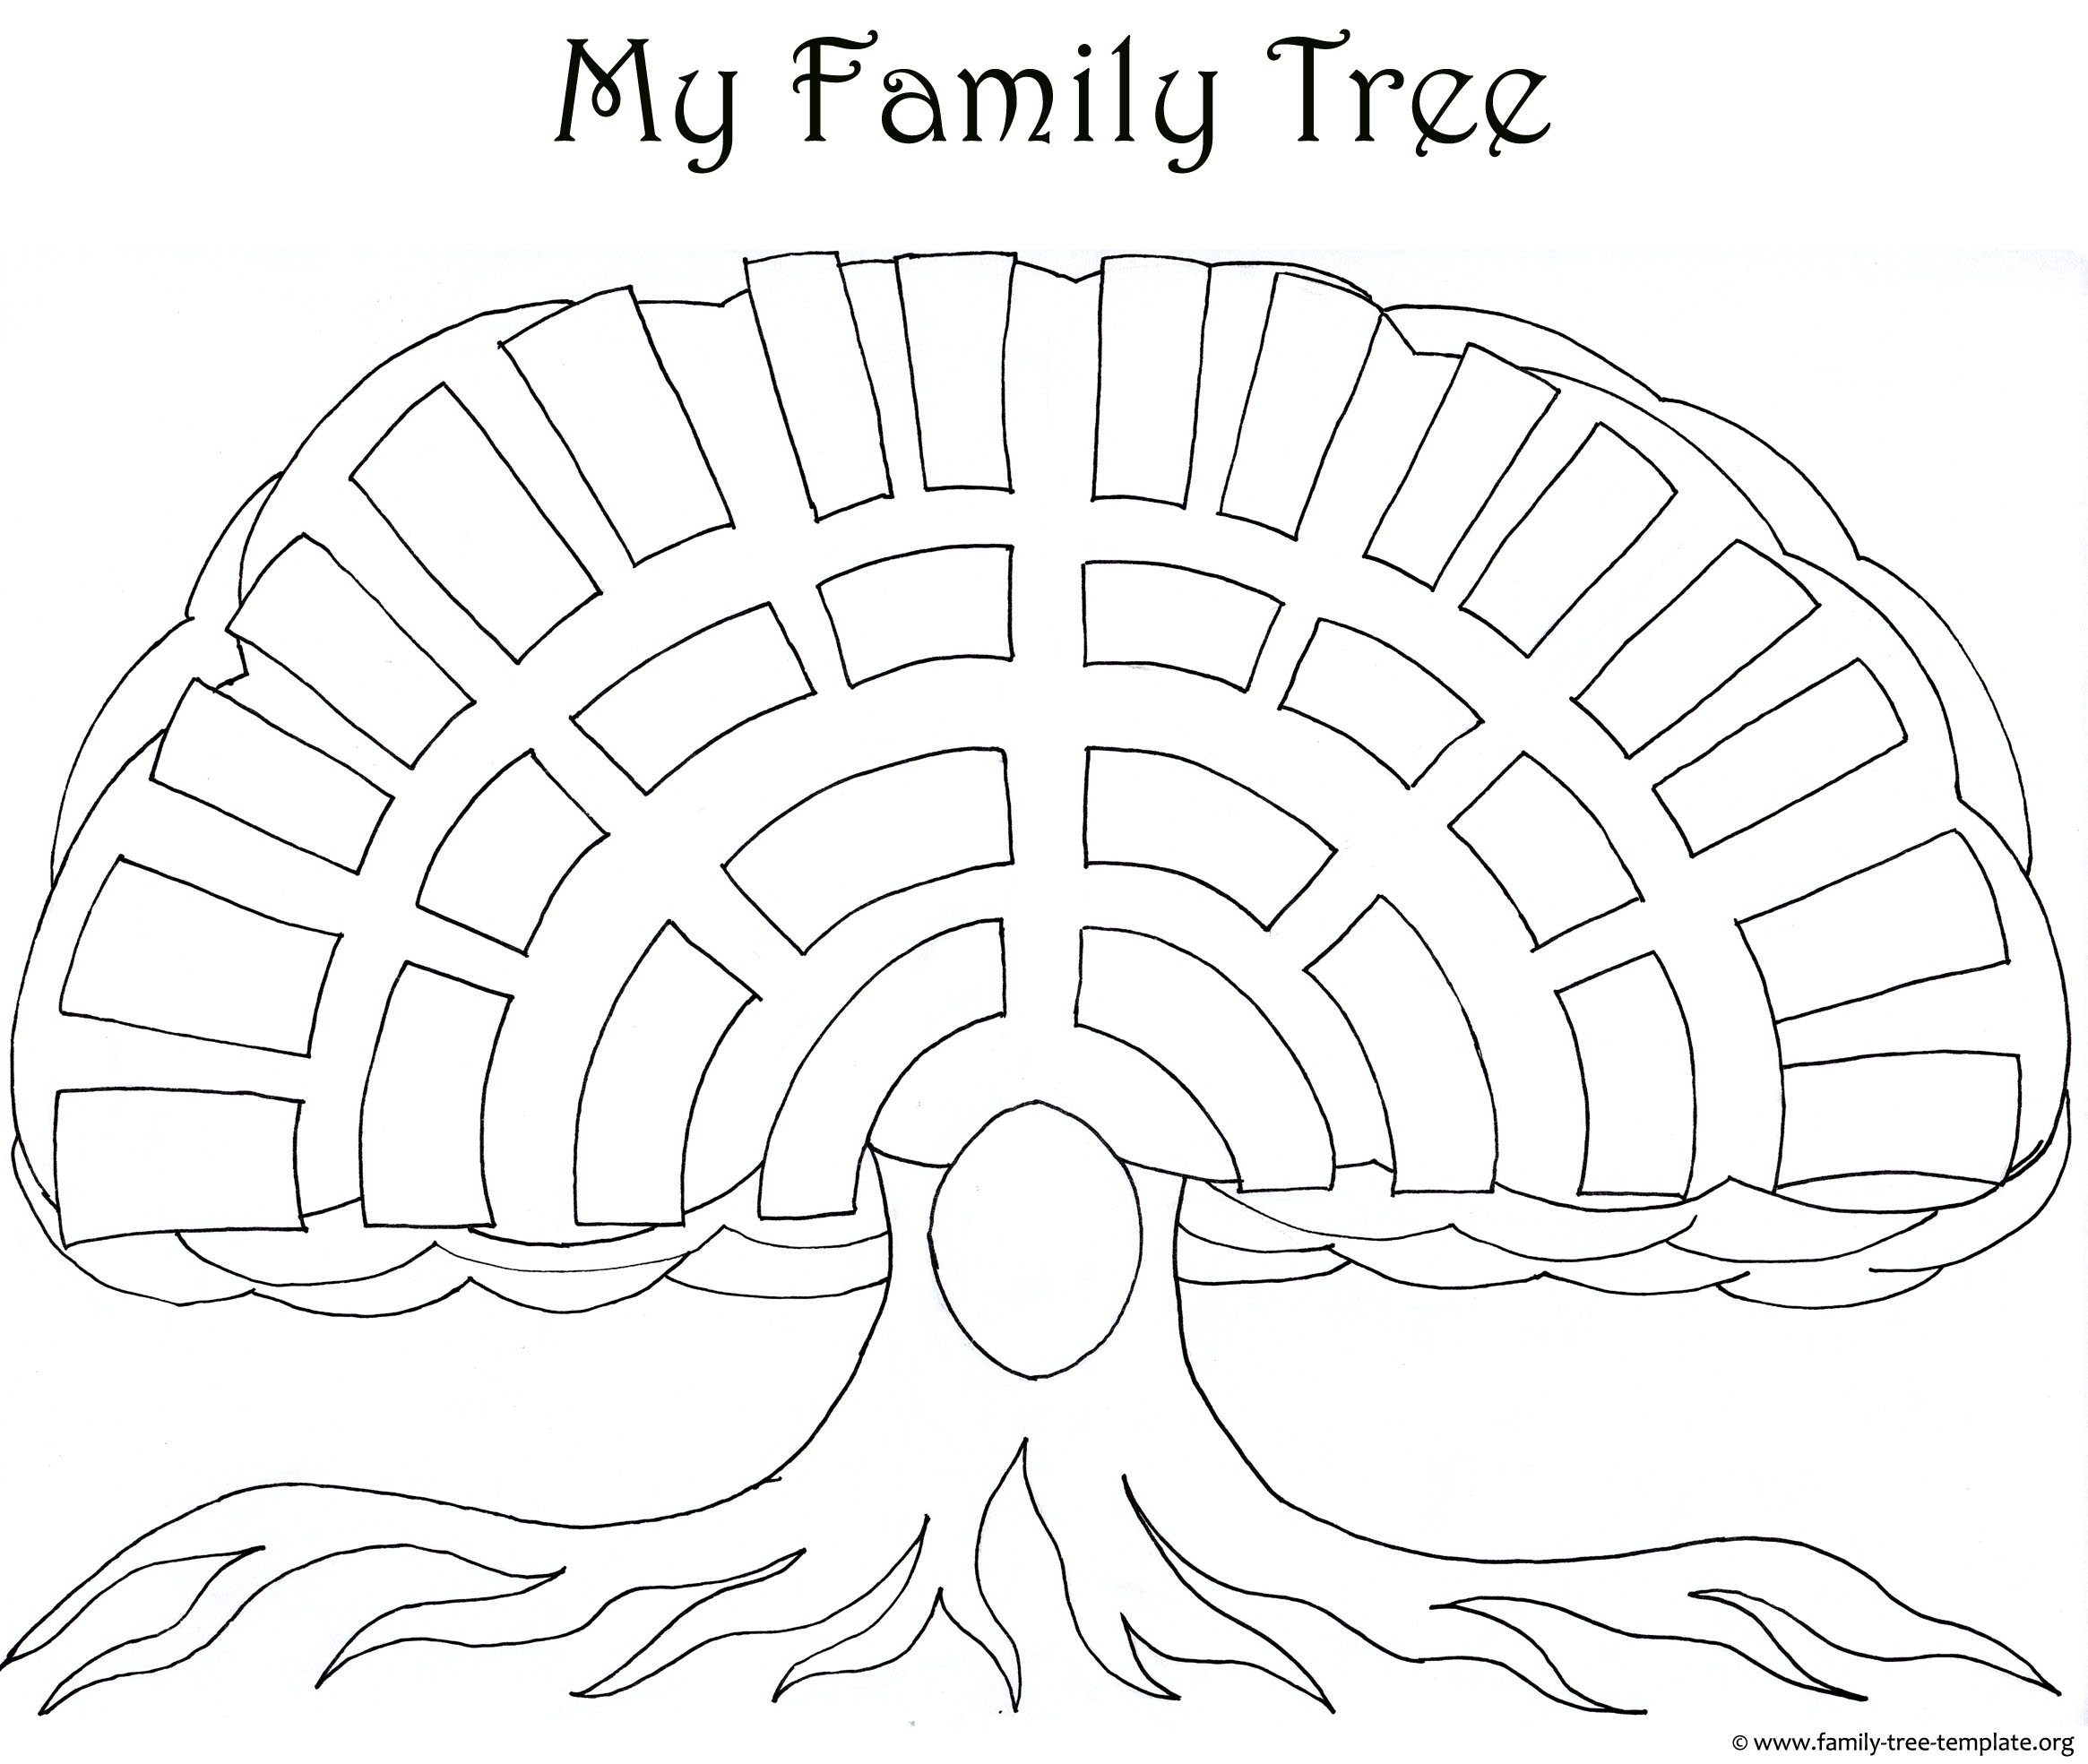 simple family tree drawing at getdrawings com free for personal